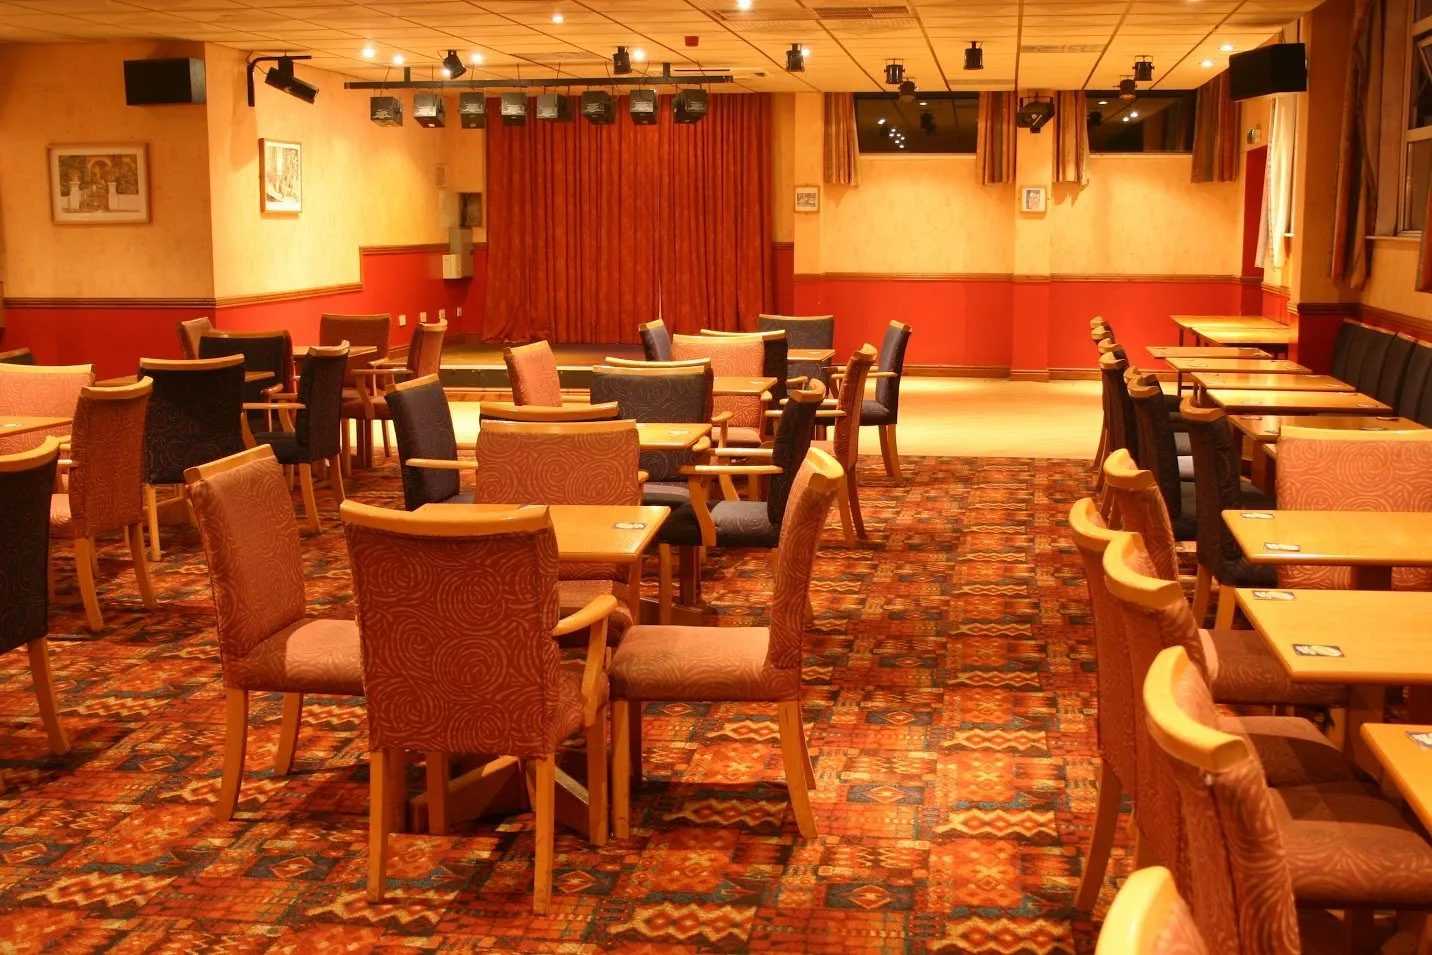 Standard Triumph Club function room with tables and chairs